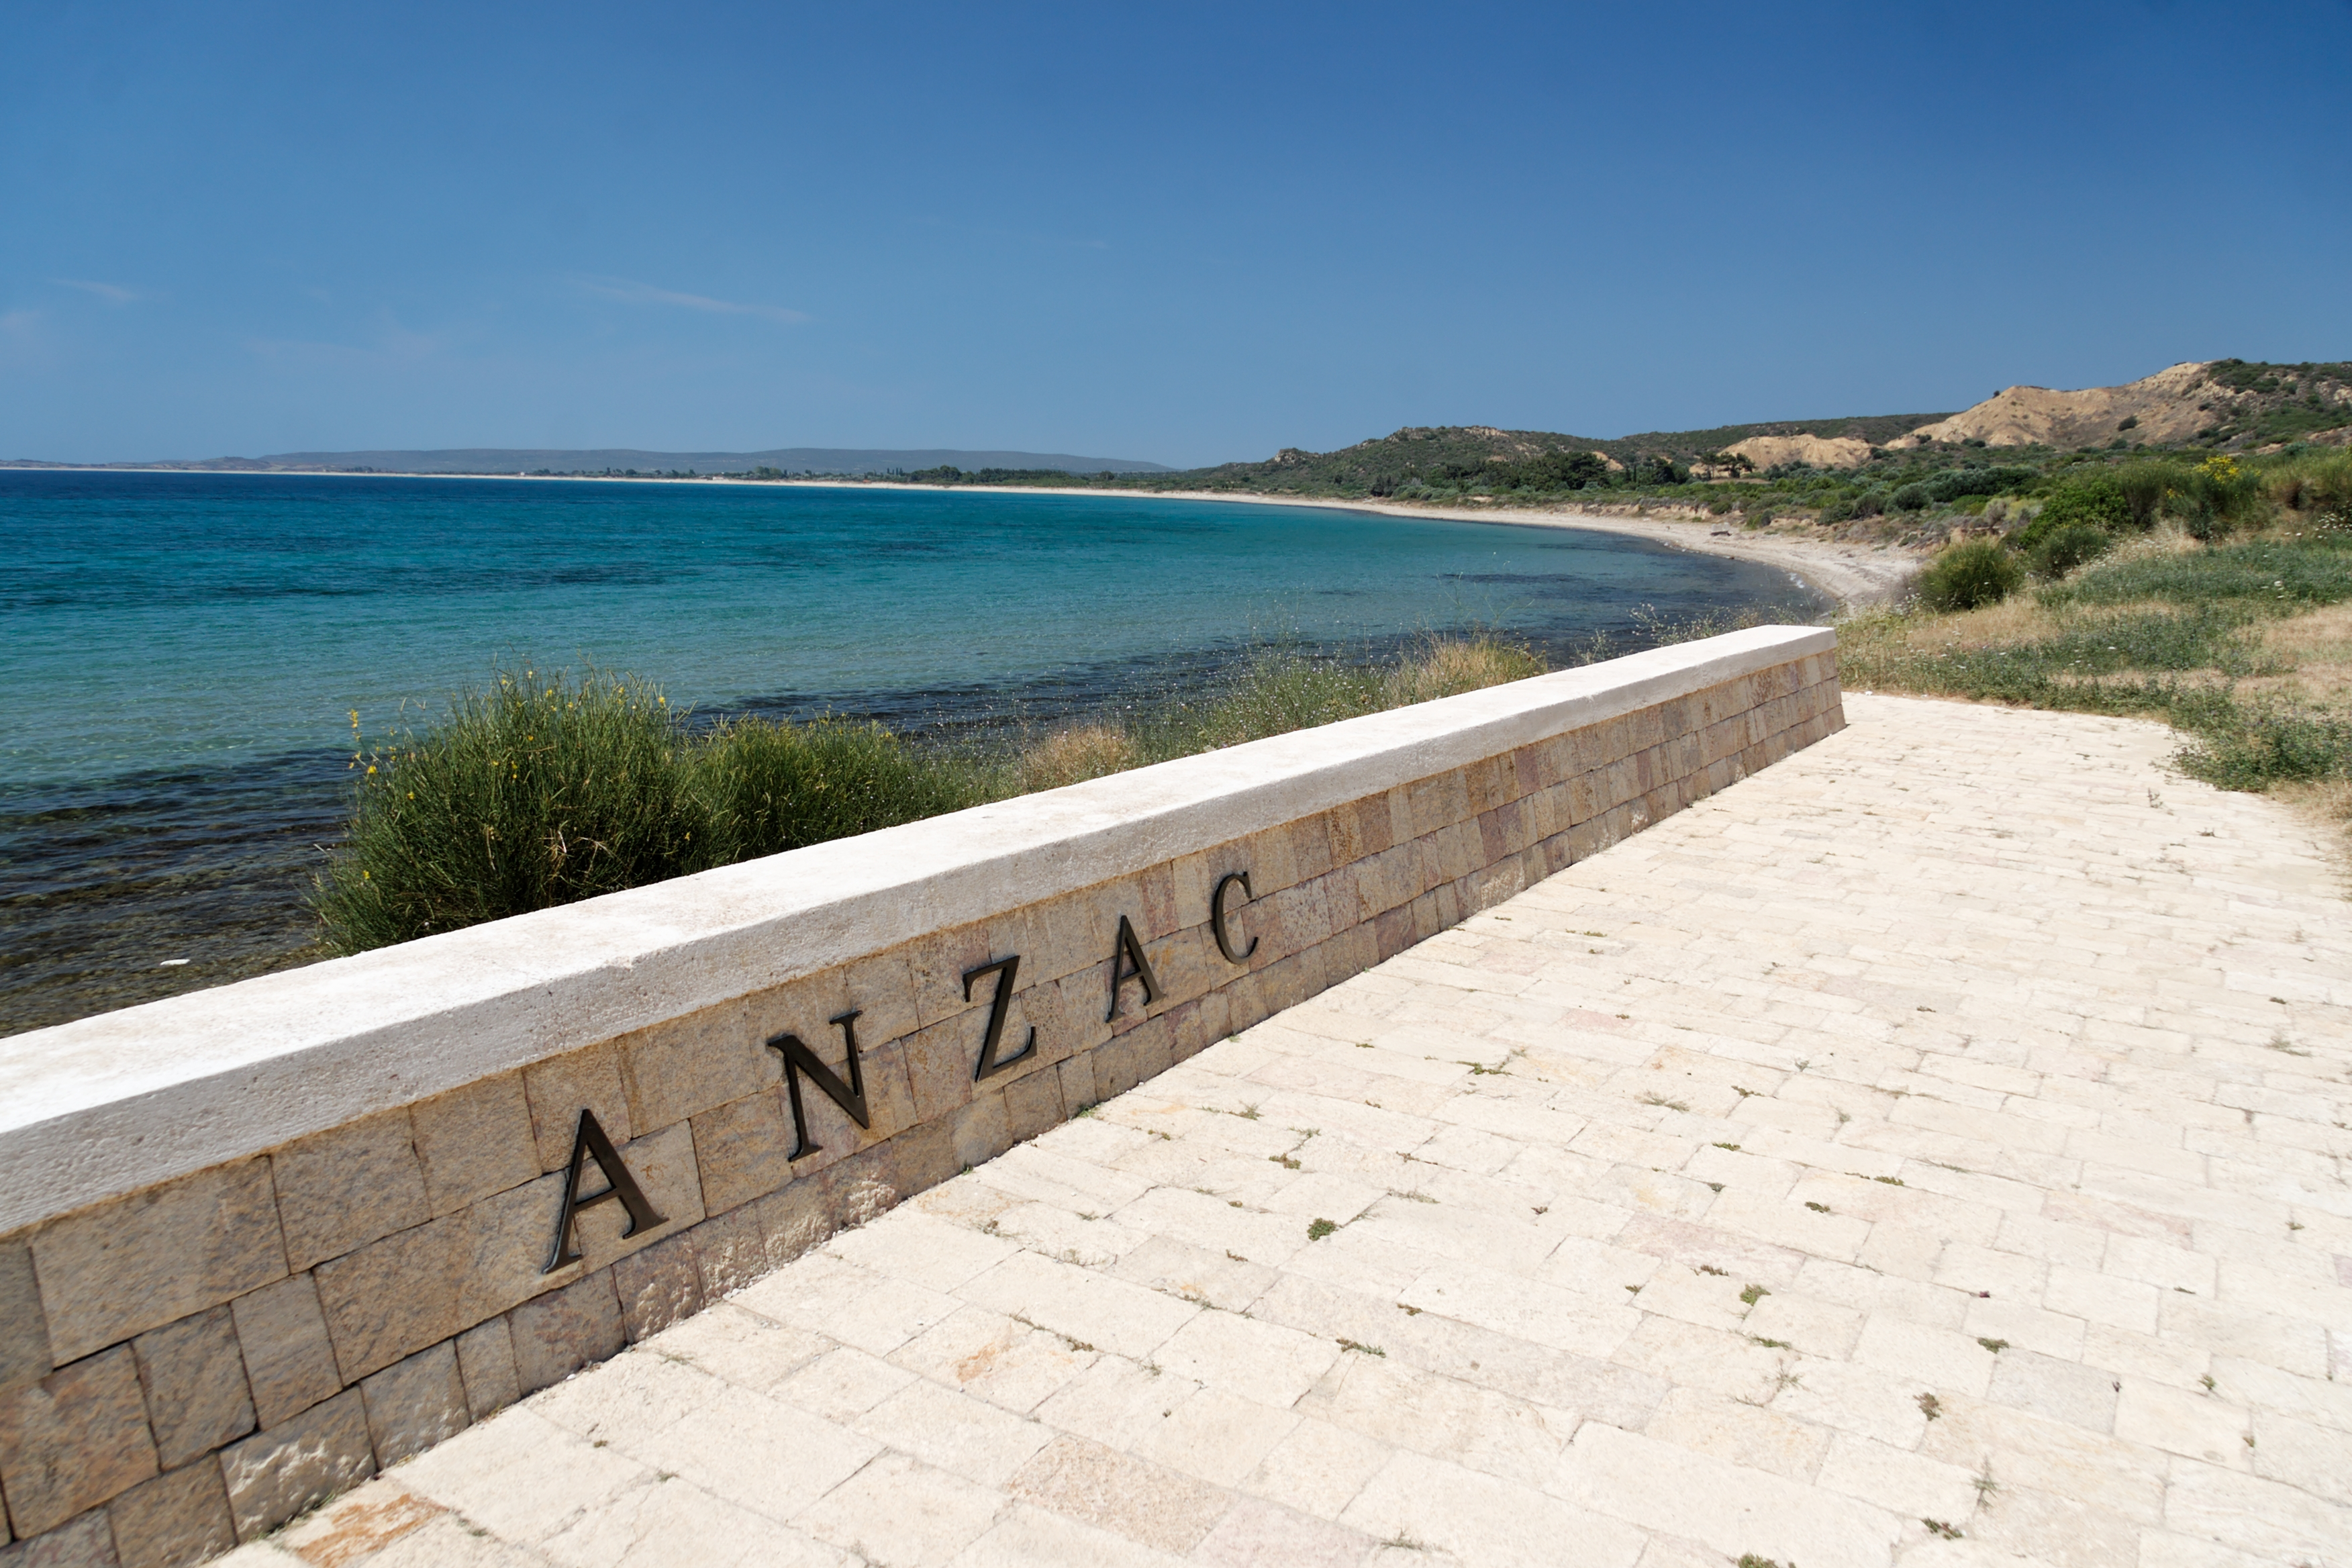 Australia to review travel advice for Turkey following ANZAC comment